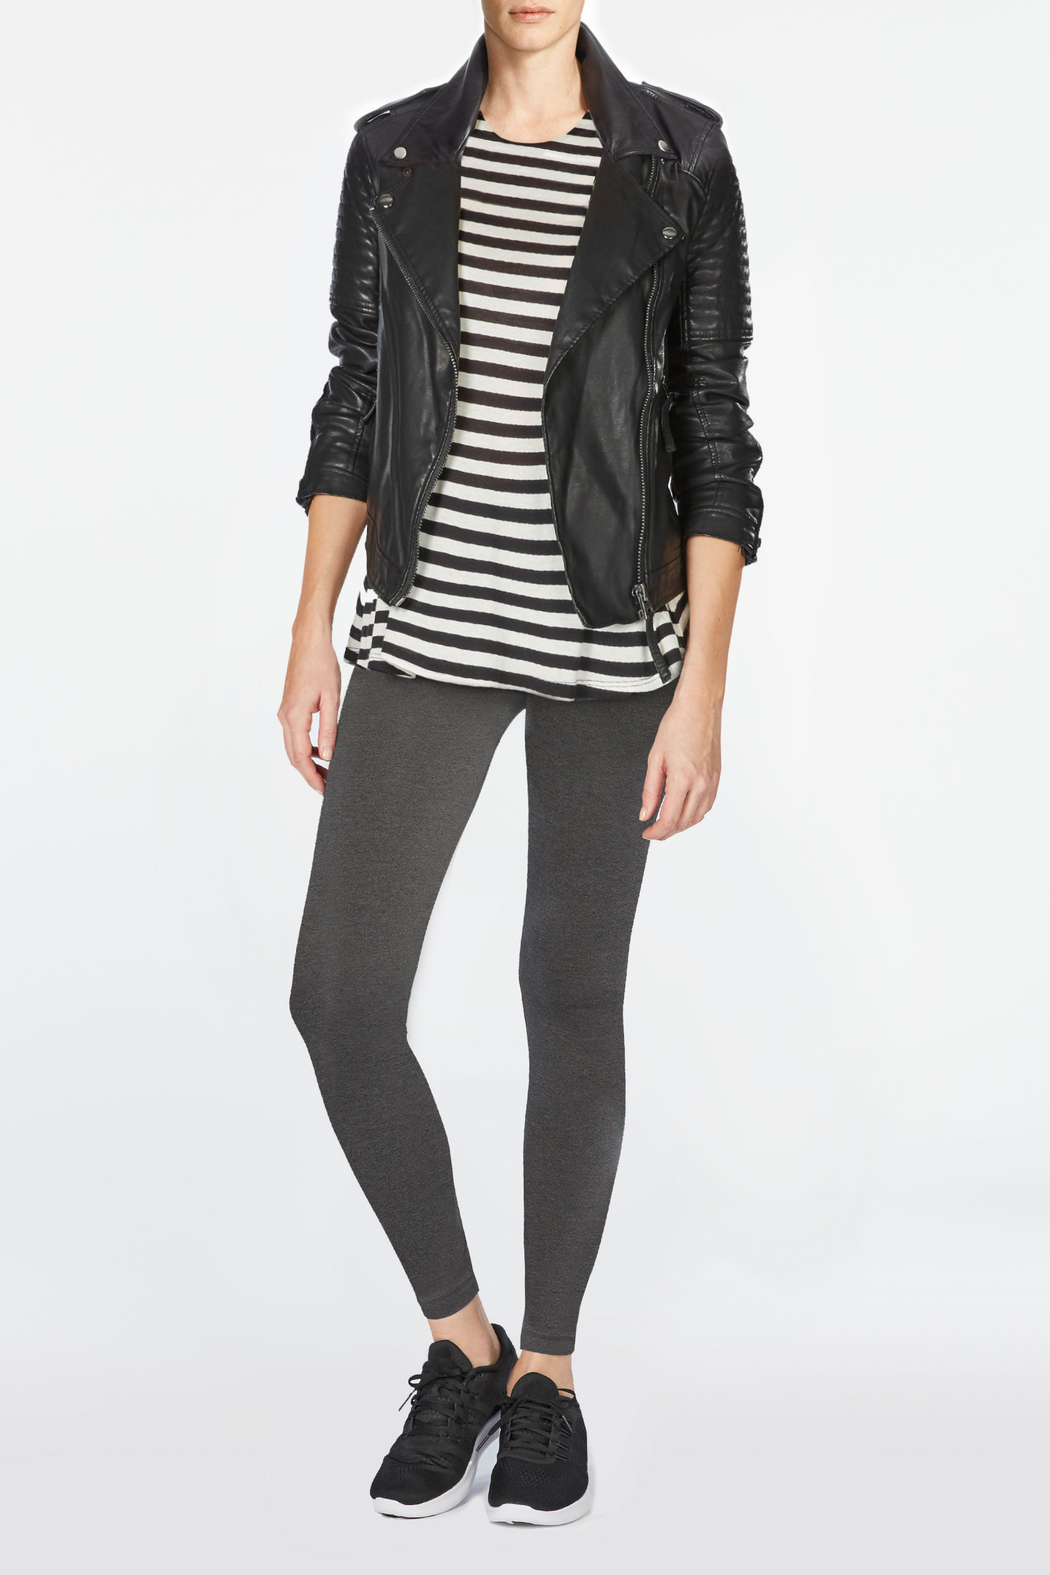 Spanx Look At Me Now Seamless Leggings - Back Cropped Image